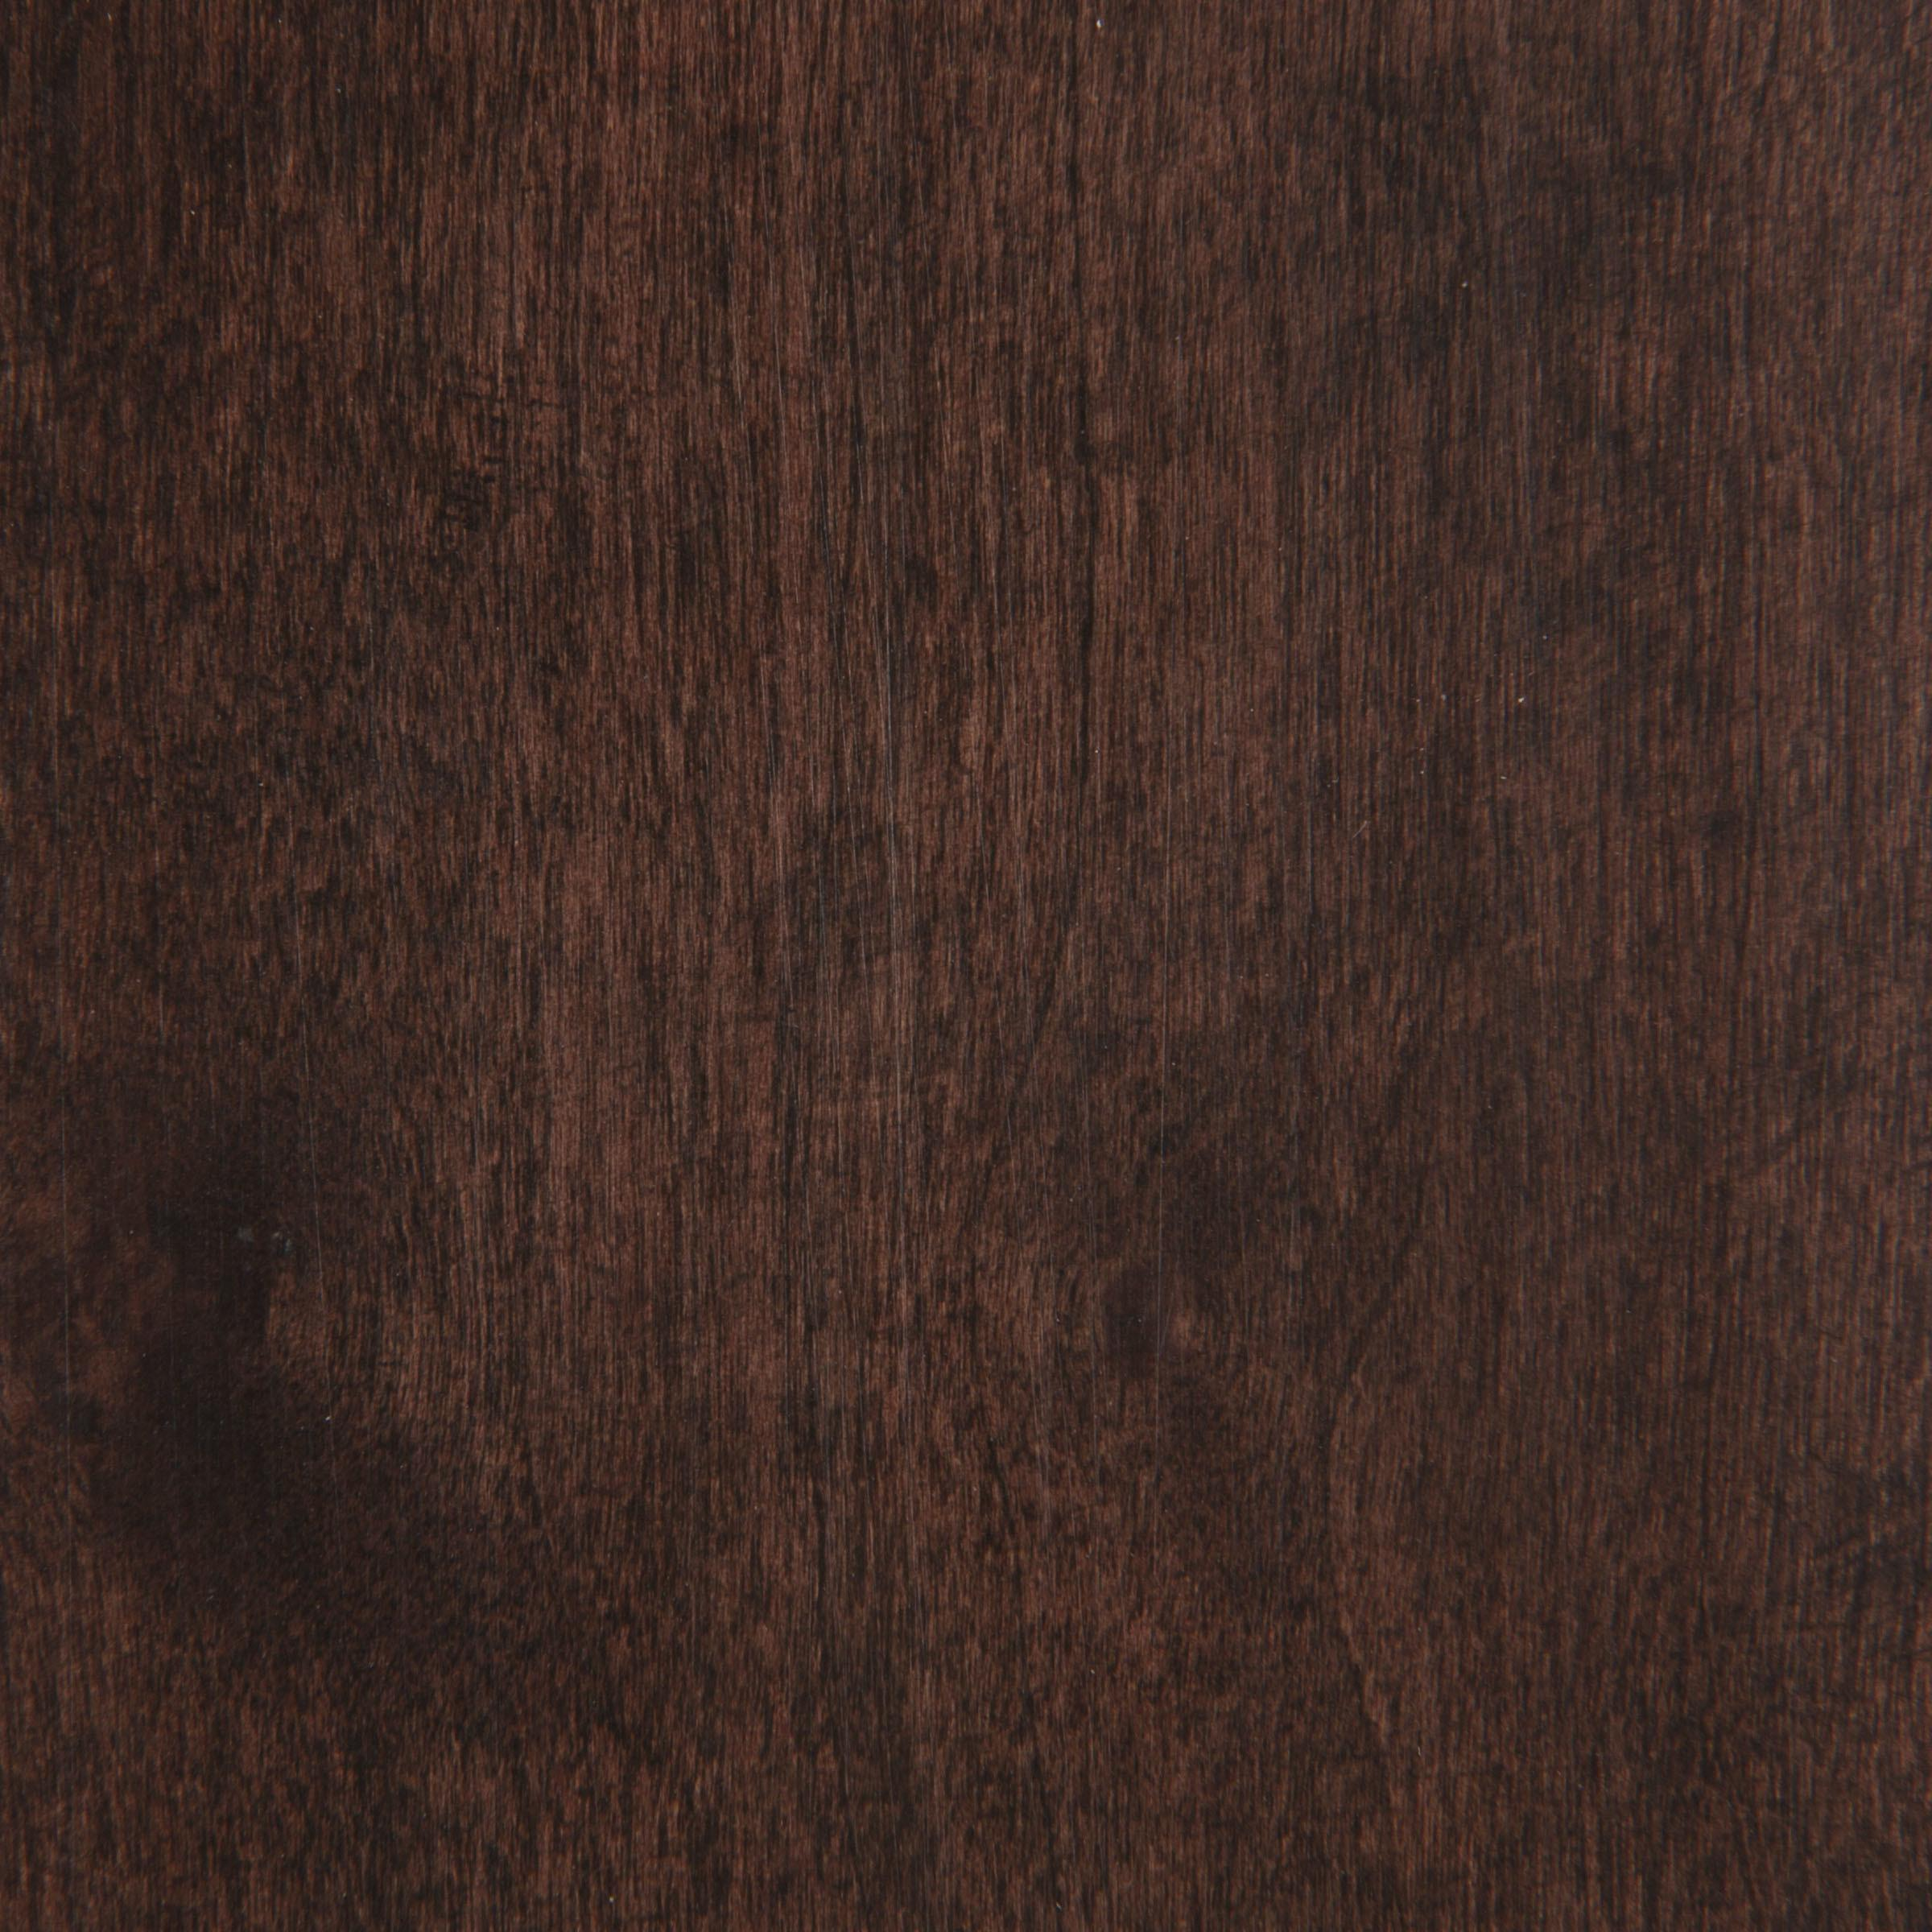 Standard Stained Wood Finishes Finish Categories